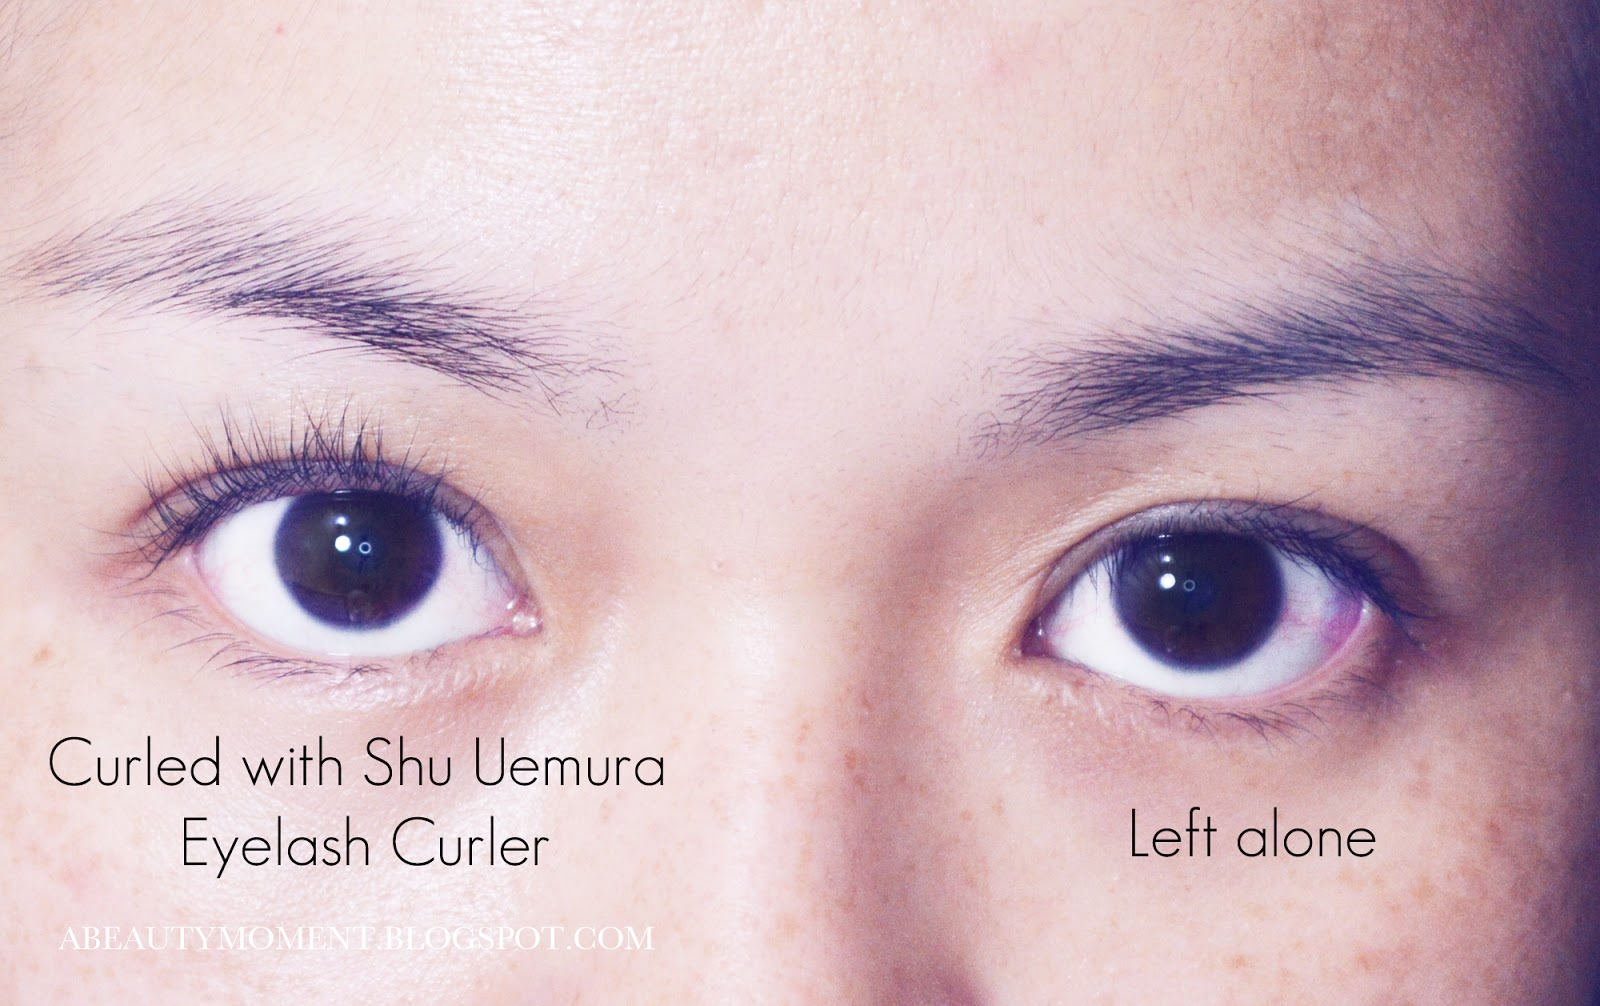 Collection Eyelash Curler Before And After Pictures - Lotki